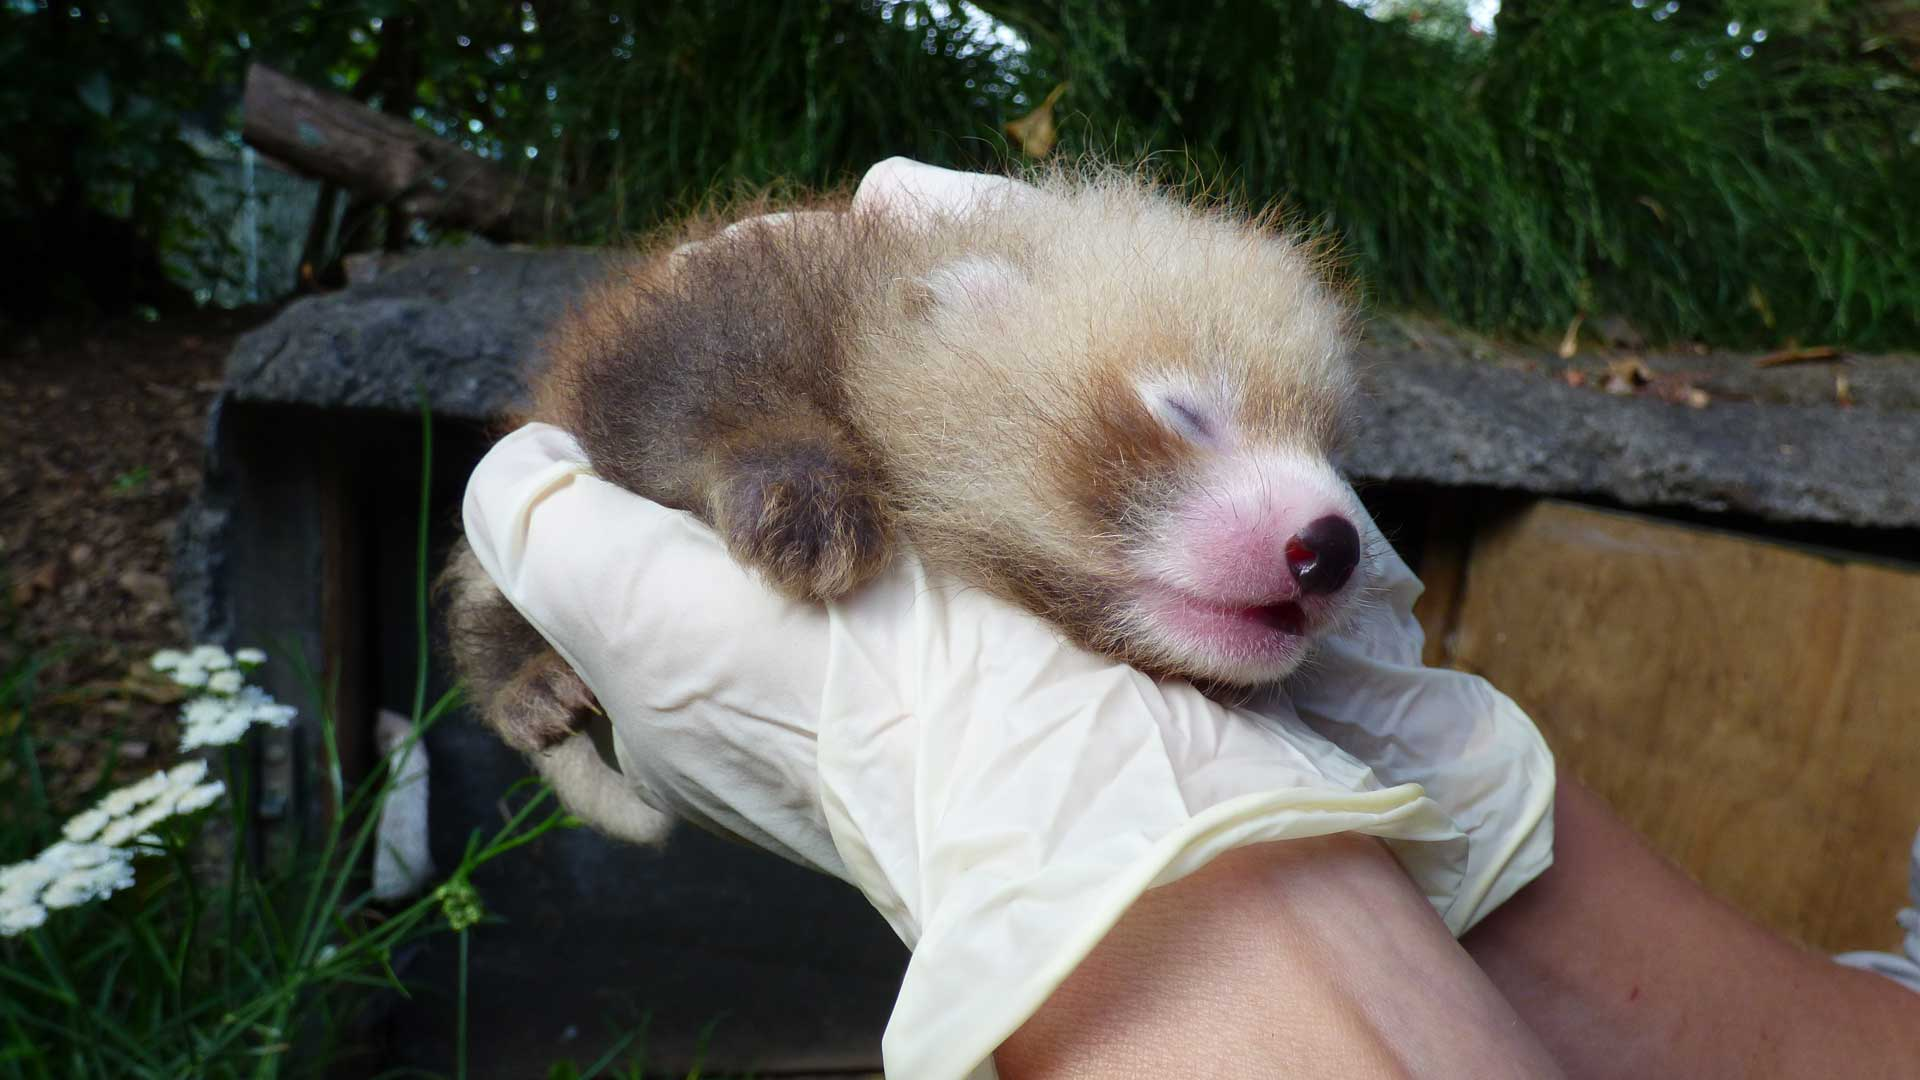 https://rfacdn.nz/zoo/assets/media/red-panda-cub-gallery-1.jpg